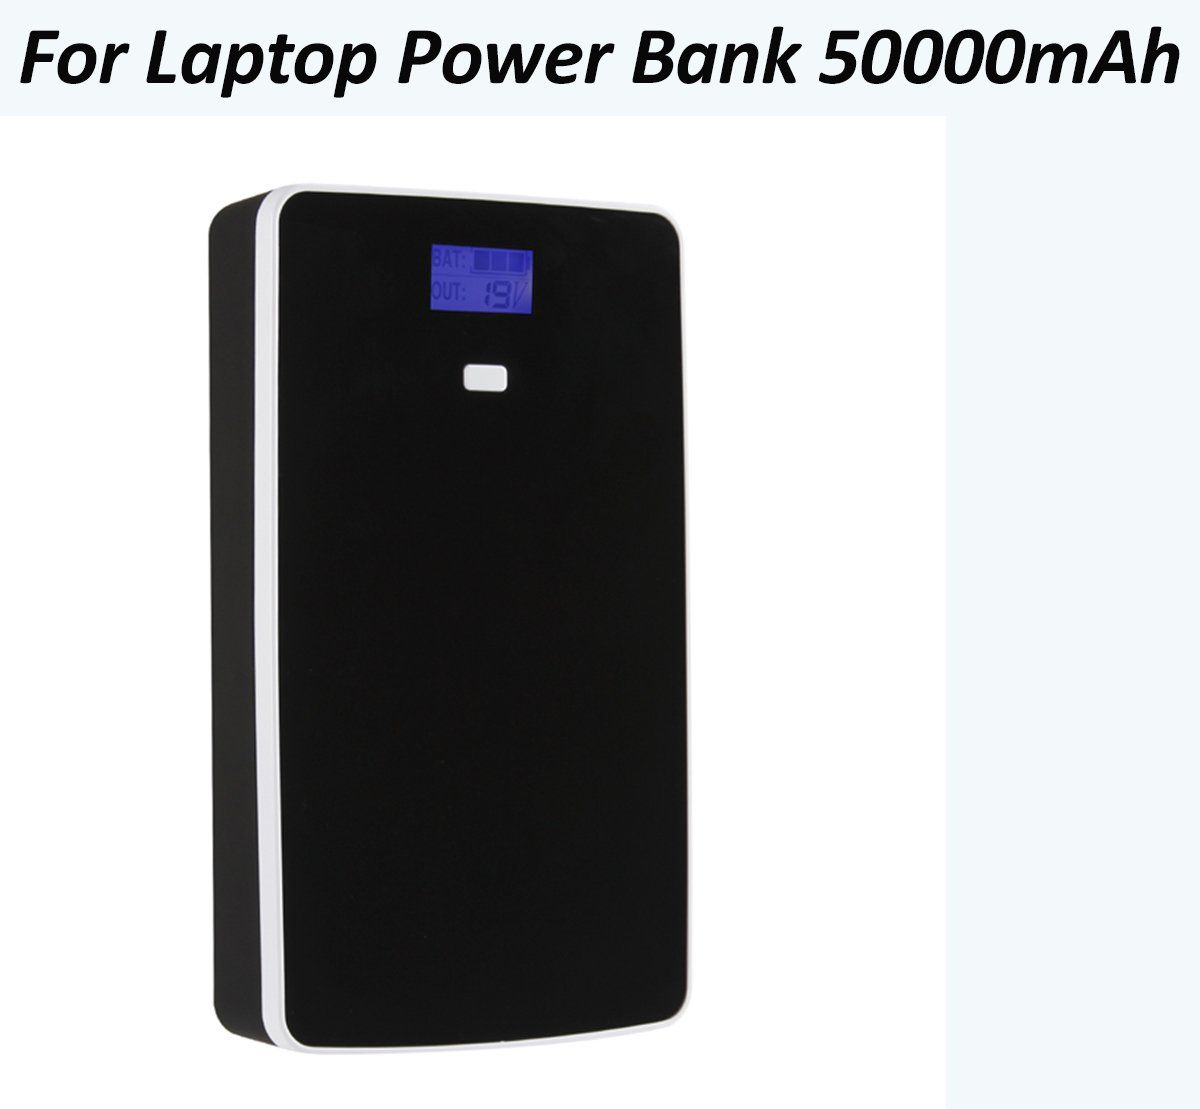 Laptop Power Bank 50000 Mah Portable Charger External Battery For Tabletand Notebooka Most Of Sony Dell Hp Toshiba Sam Apple Laptop Powerbank Portable Charger